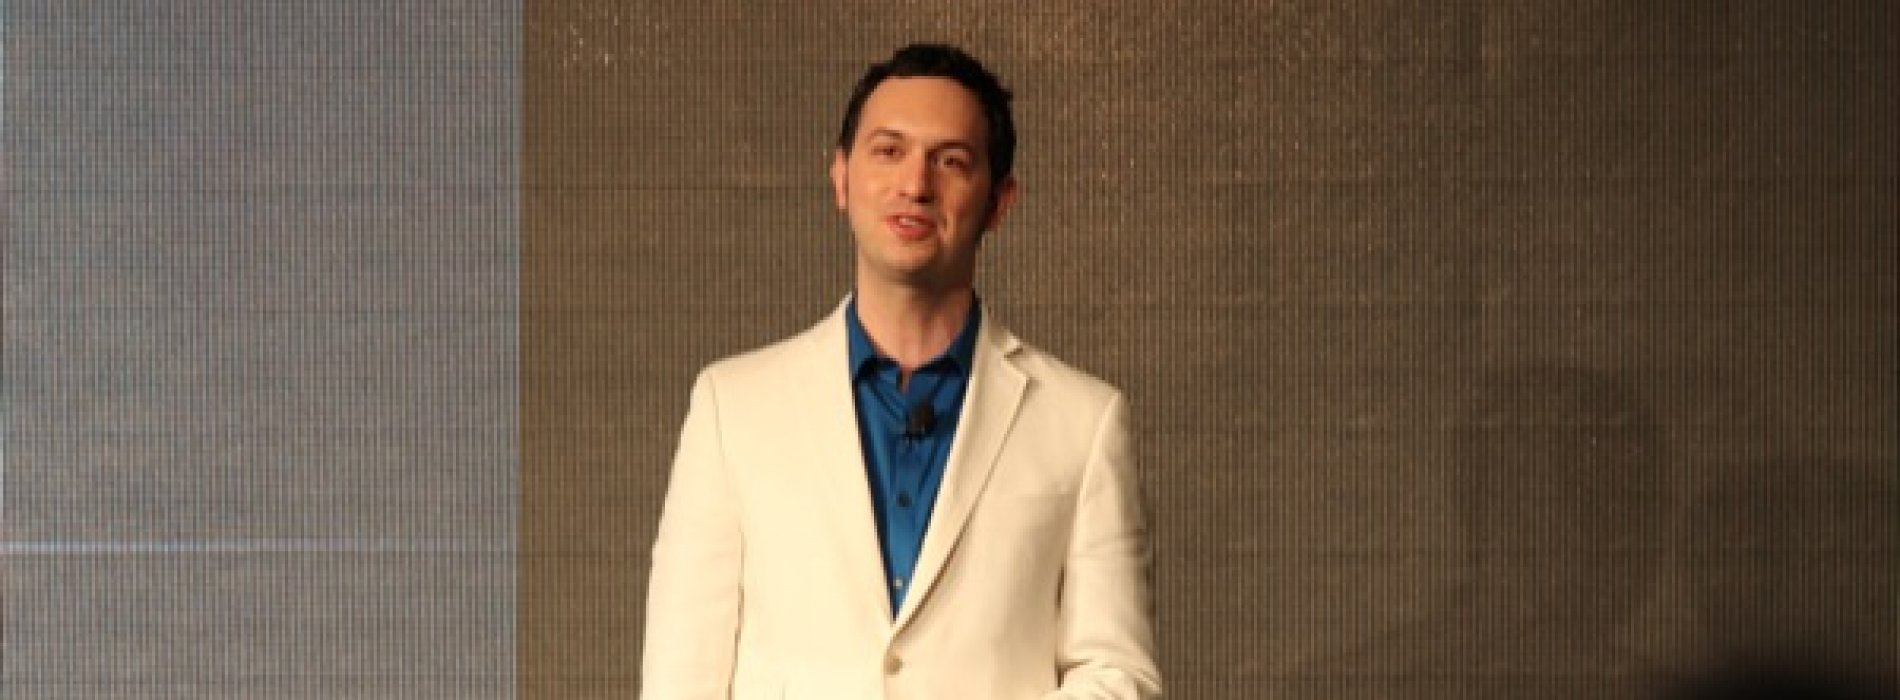 The Daily Beast to host Google Hangout with Android's Matias Duarte (12/7/11)